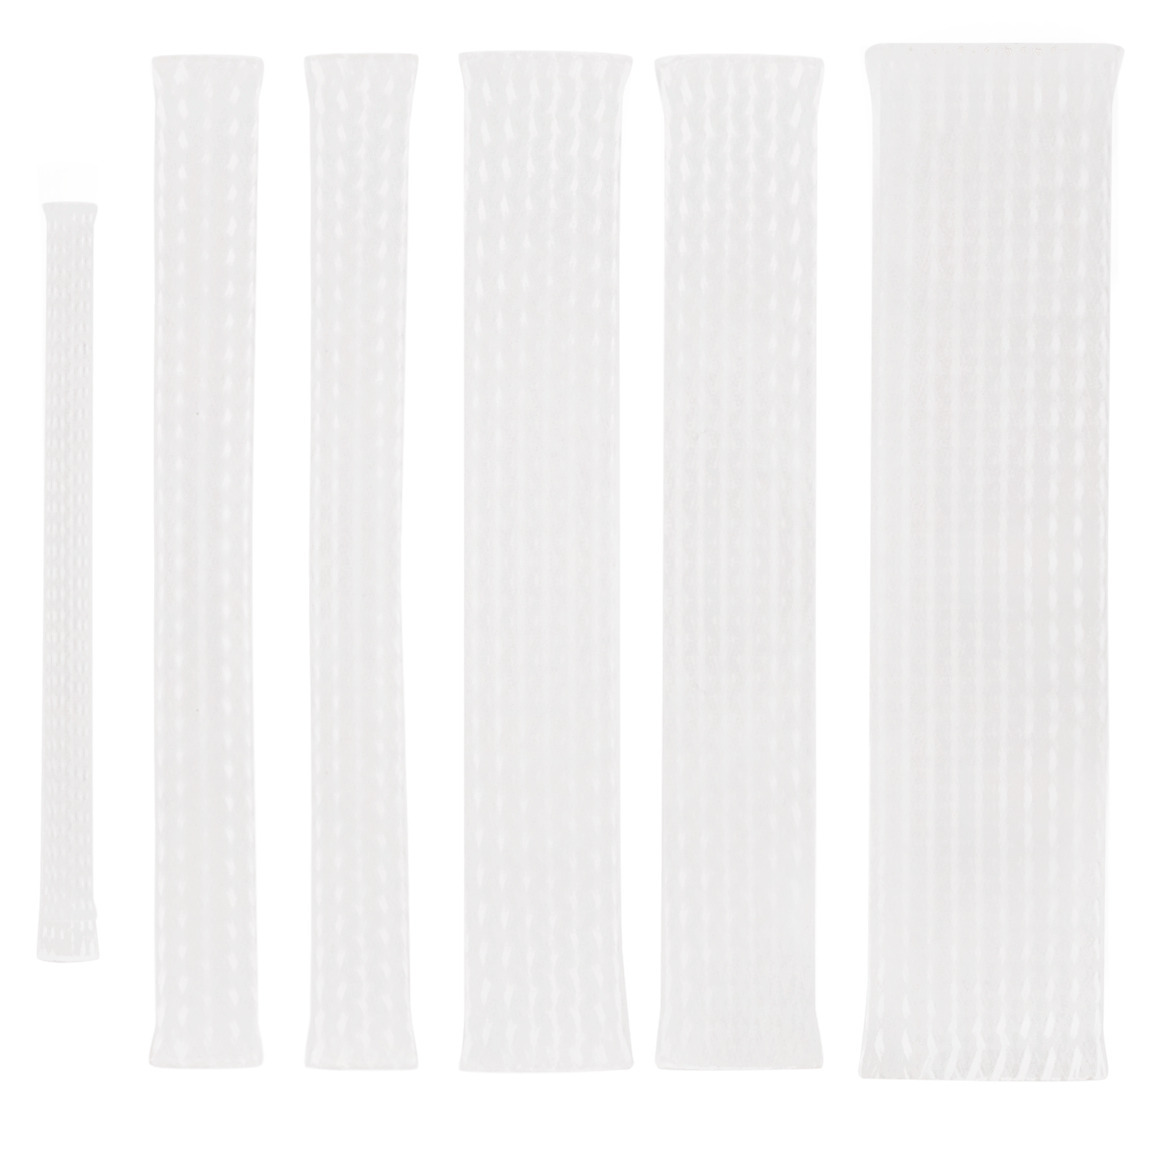 The Brush Guard Variety Pack White product swatch.